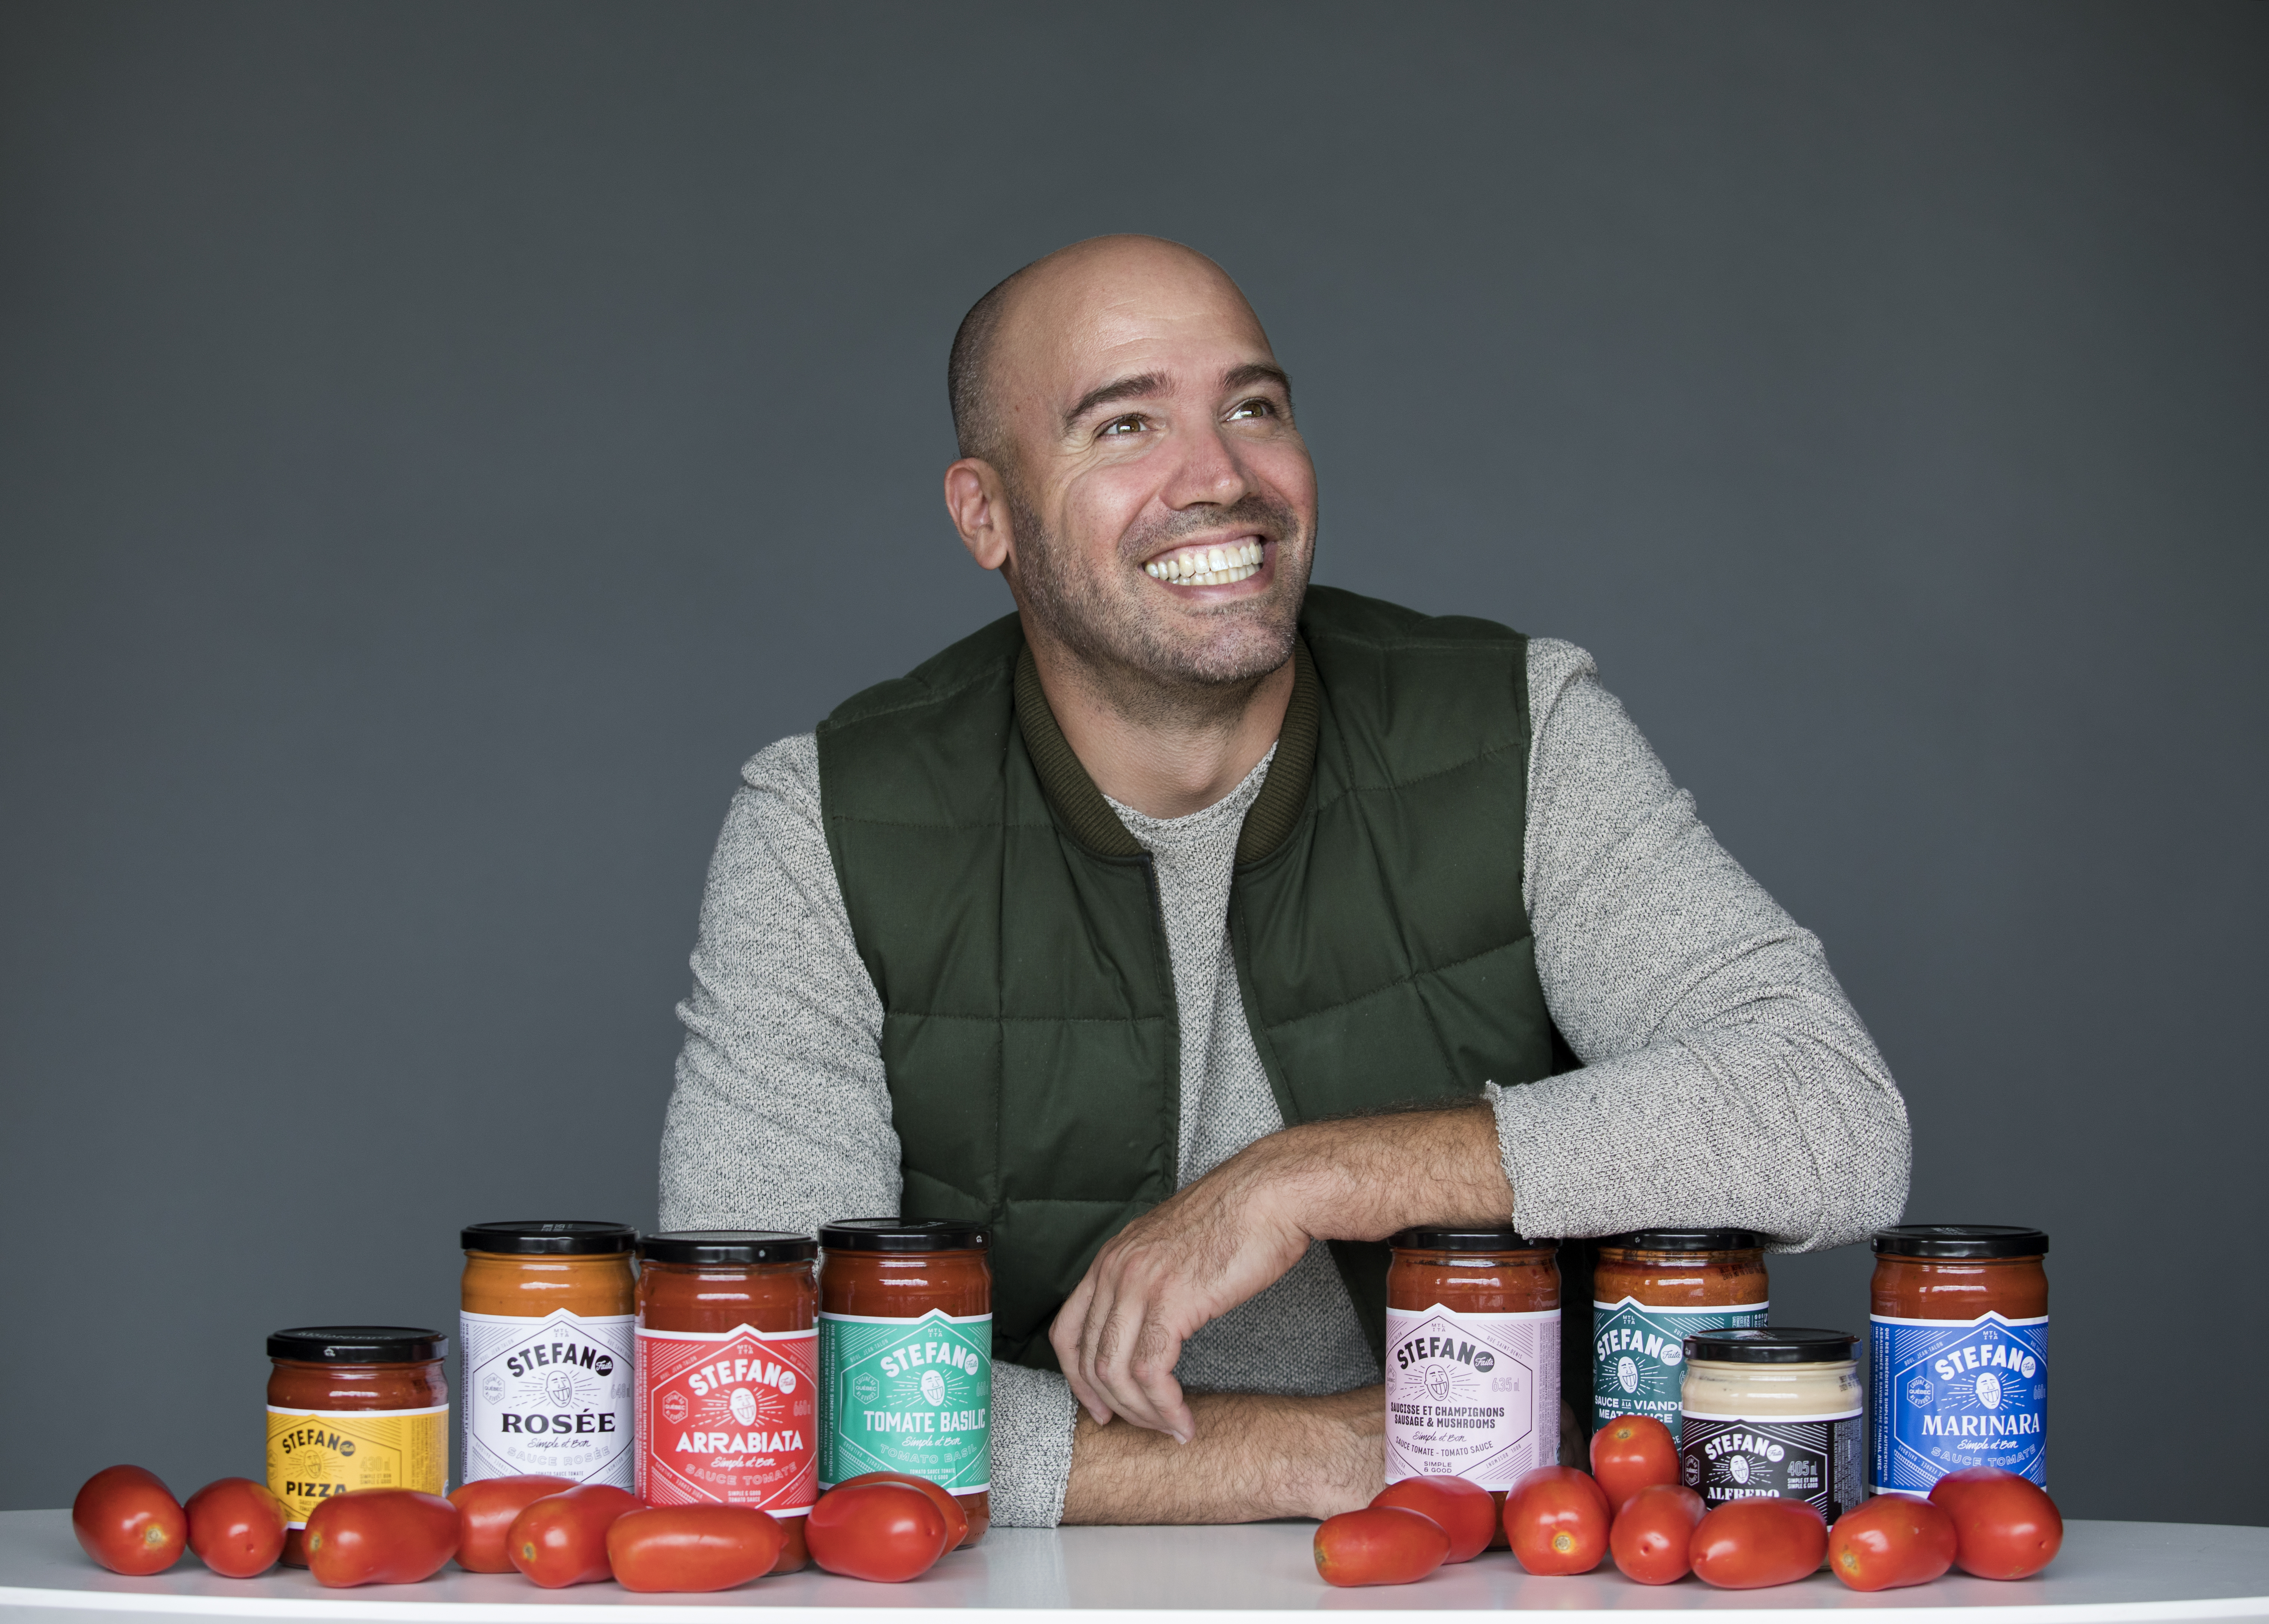 Stefano Faita poses with eight out of ten of Stefano Sauce options.